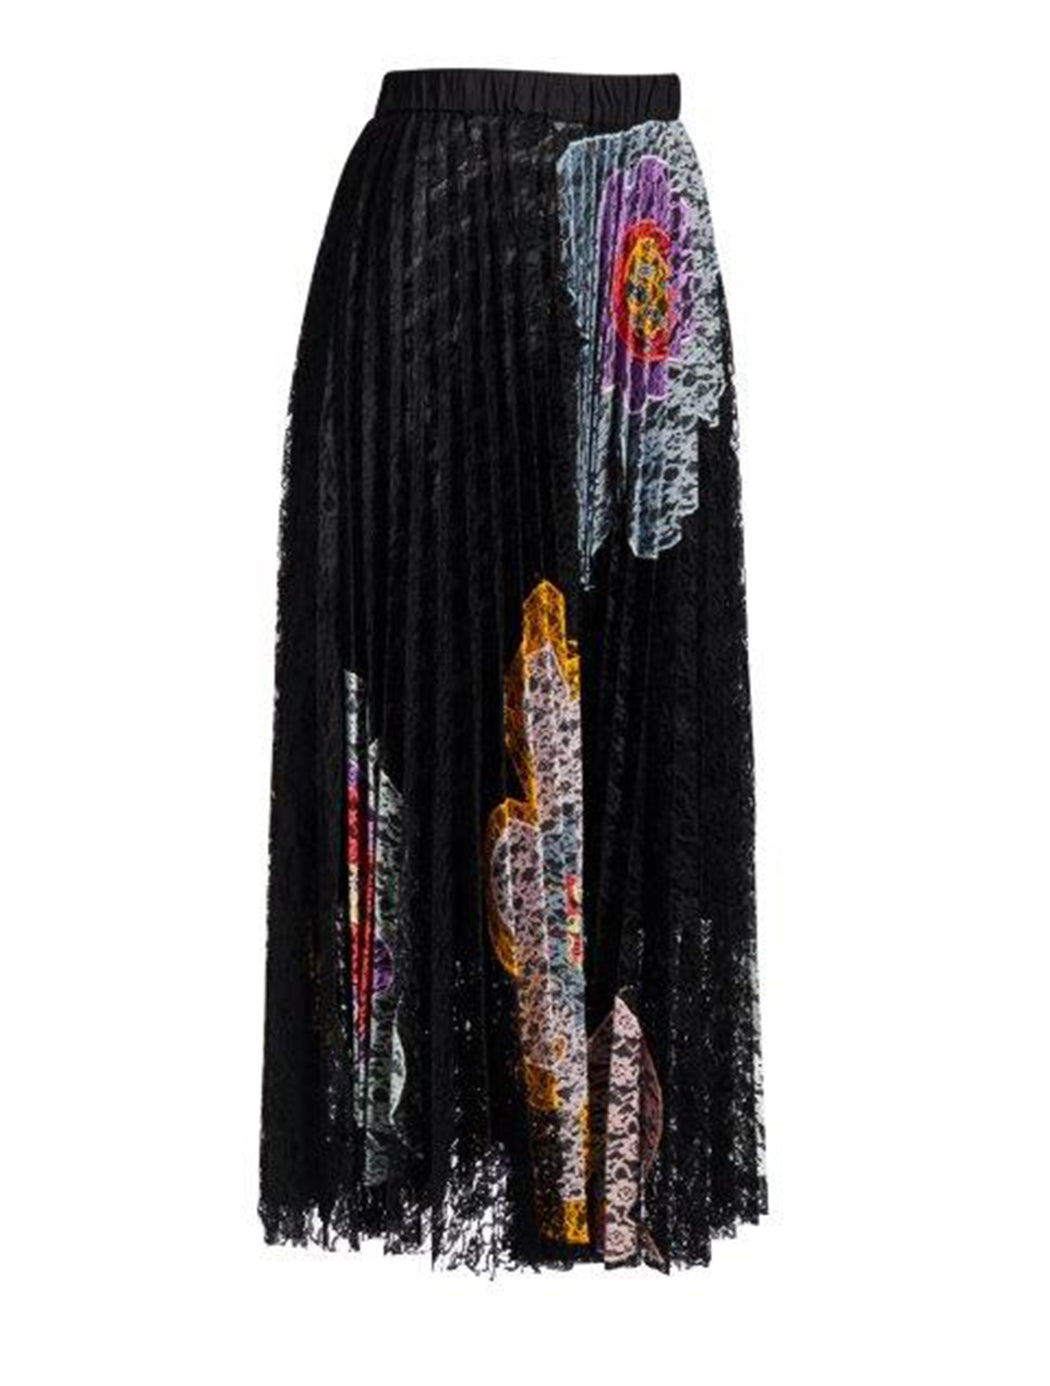 New Revolution Lace Pleated Skirt